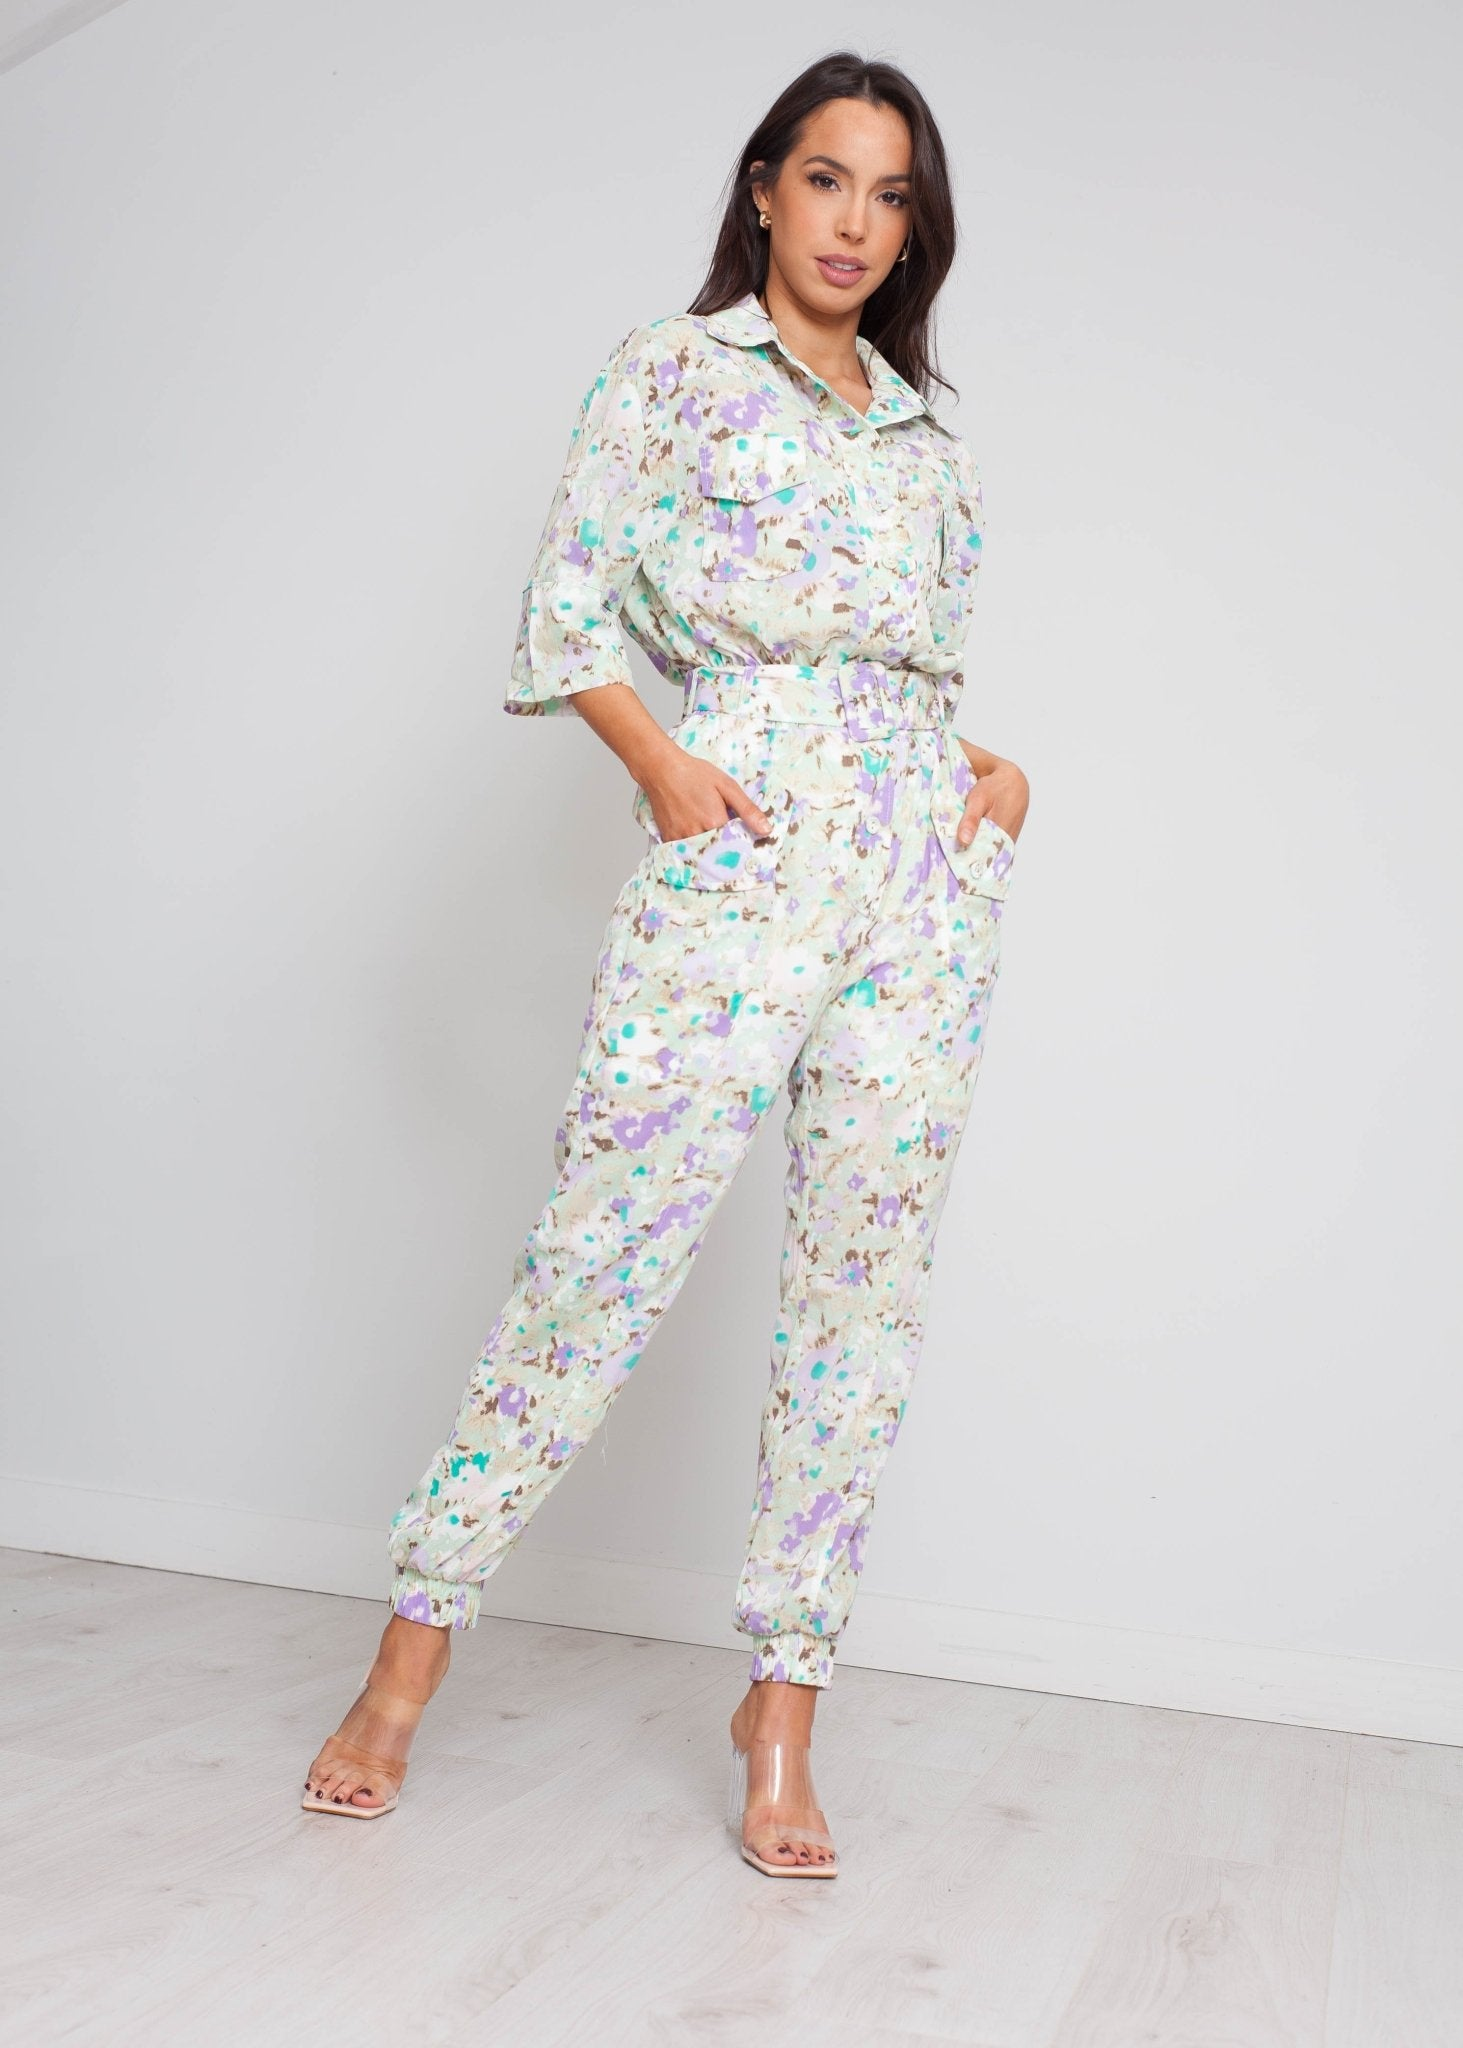 Becca Floral Jumpsuit In Green Mix - The Walk in Wardrobe